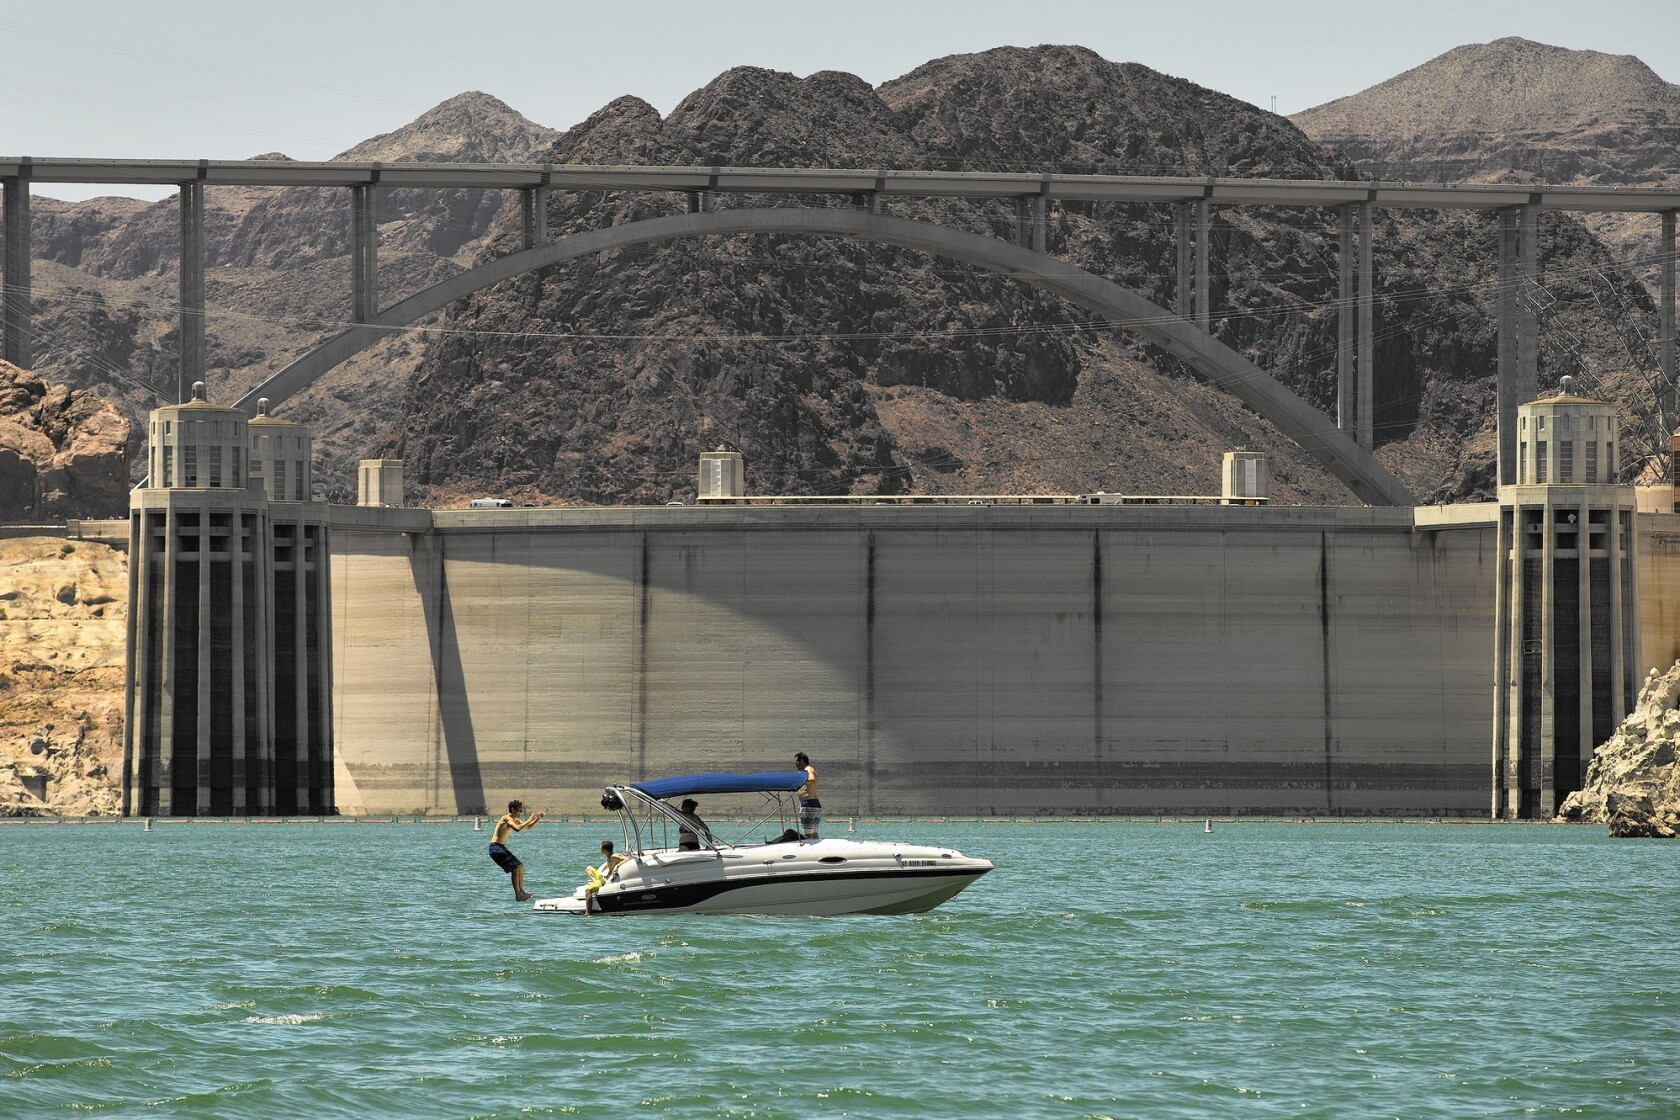 Hoover Dam, an engineering marvel, is surrounded by natural